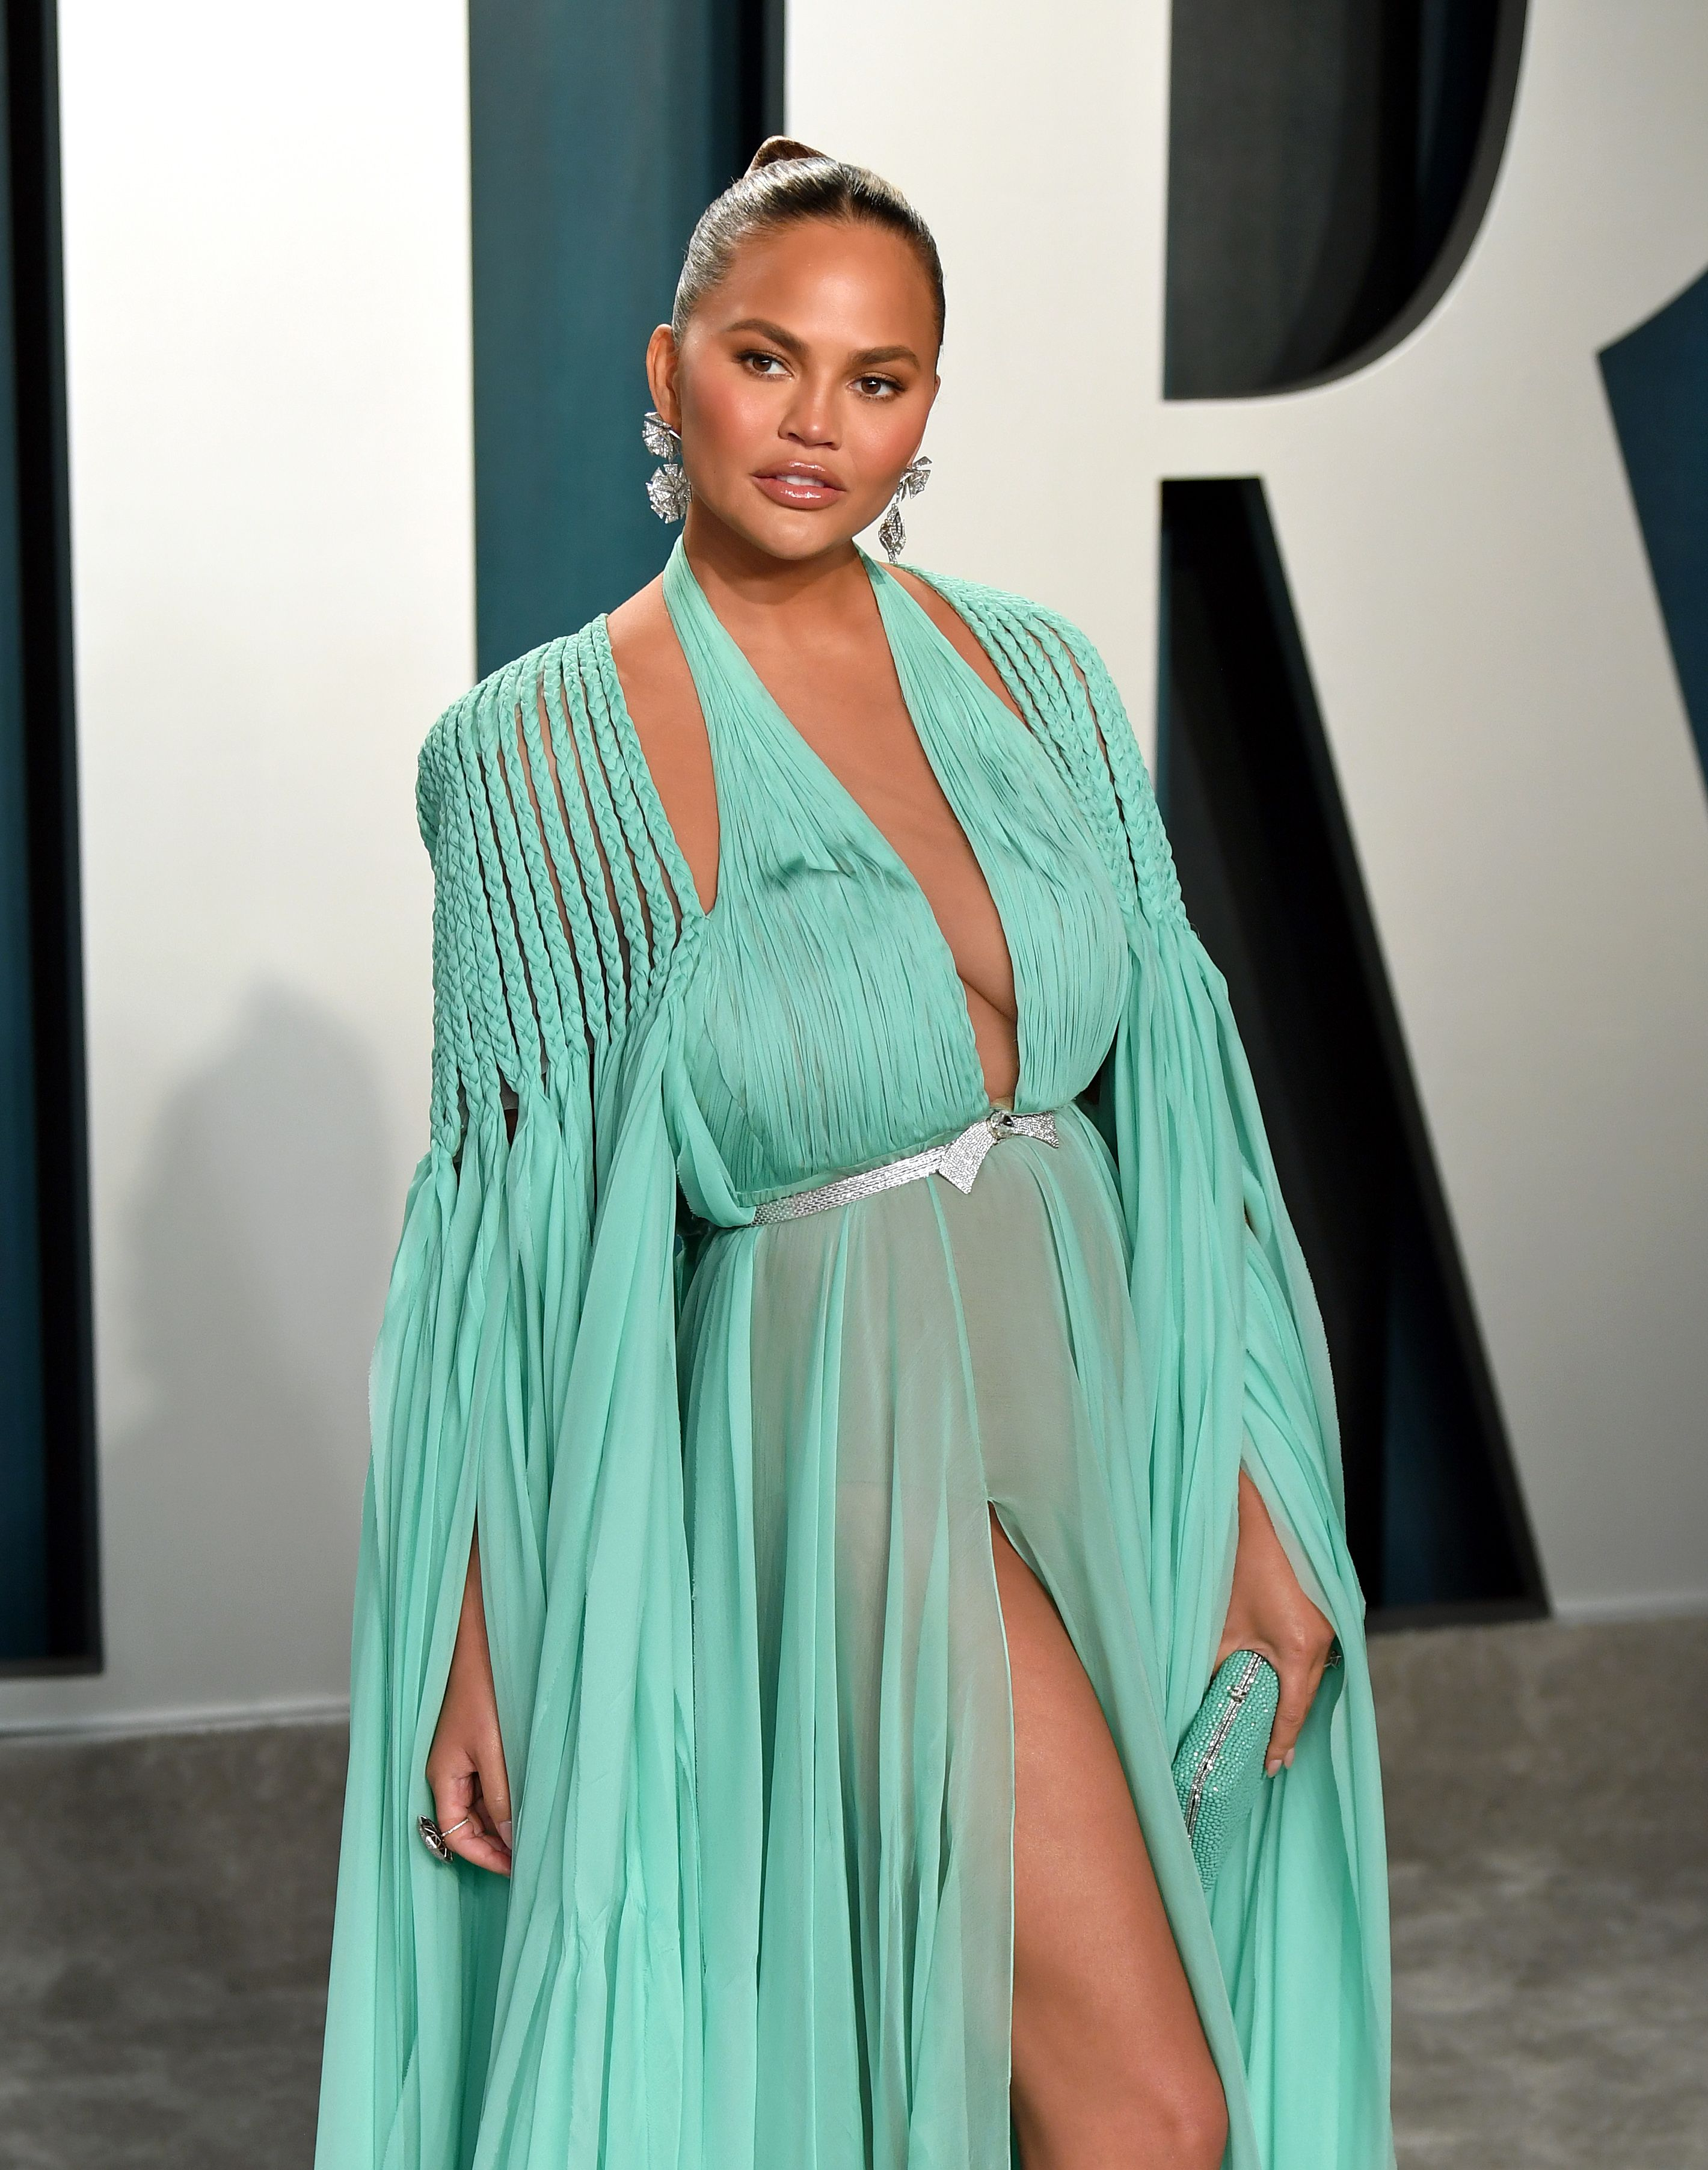 Chrissy Teigen attends the 2020 Vanity Fair Oscar Party hosted by Radhika Jones at Wallis Annenberg Center for the Performing Arts on February 09, 2020 in Beverly Hills, California. | Source: Getty Images